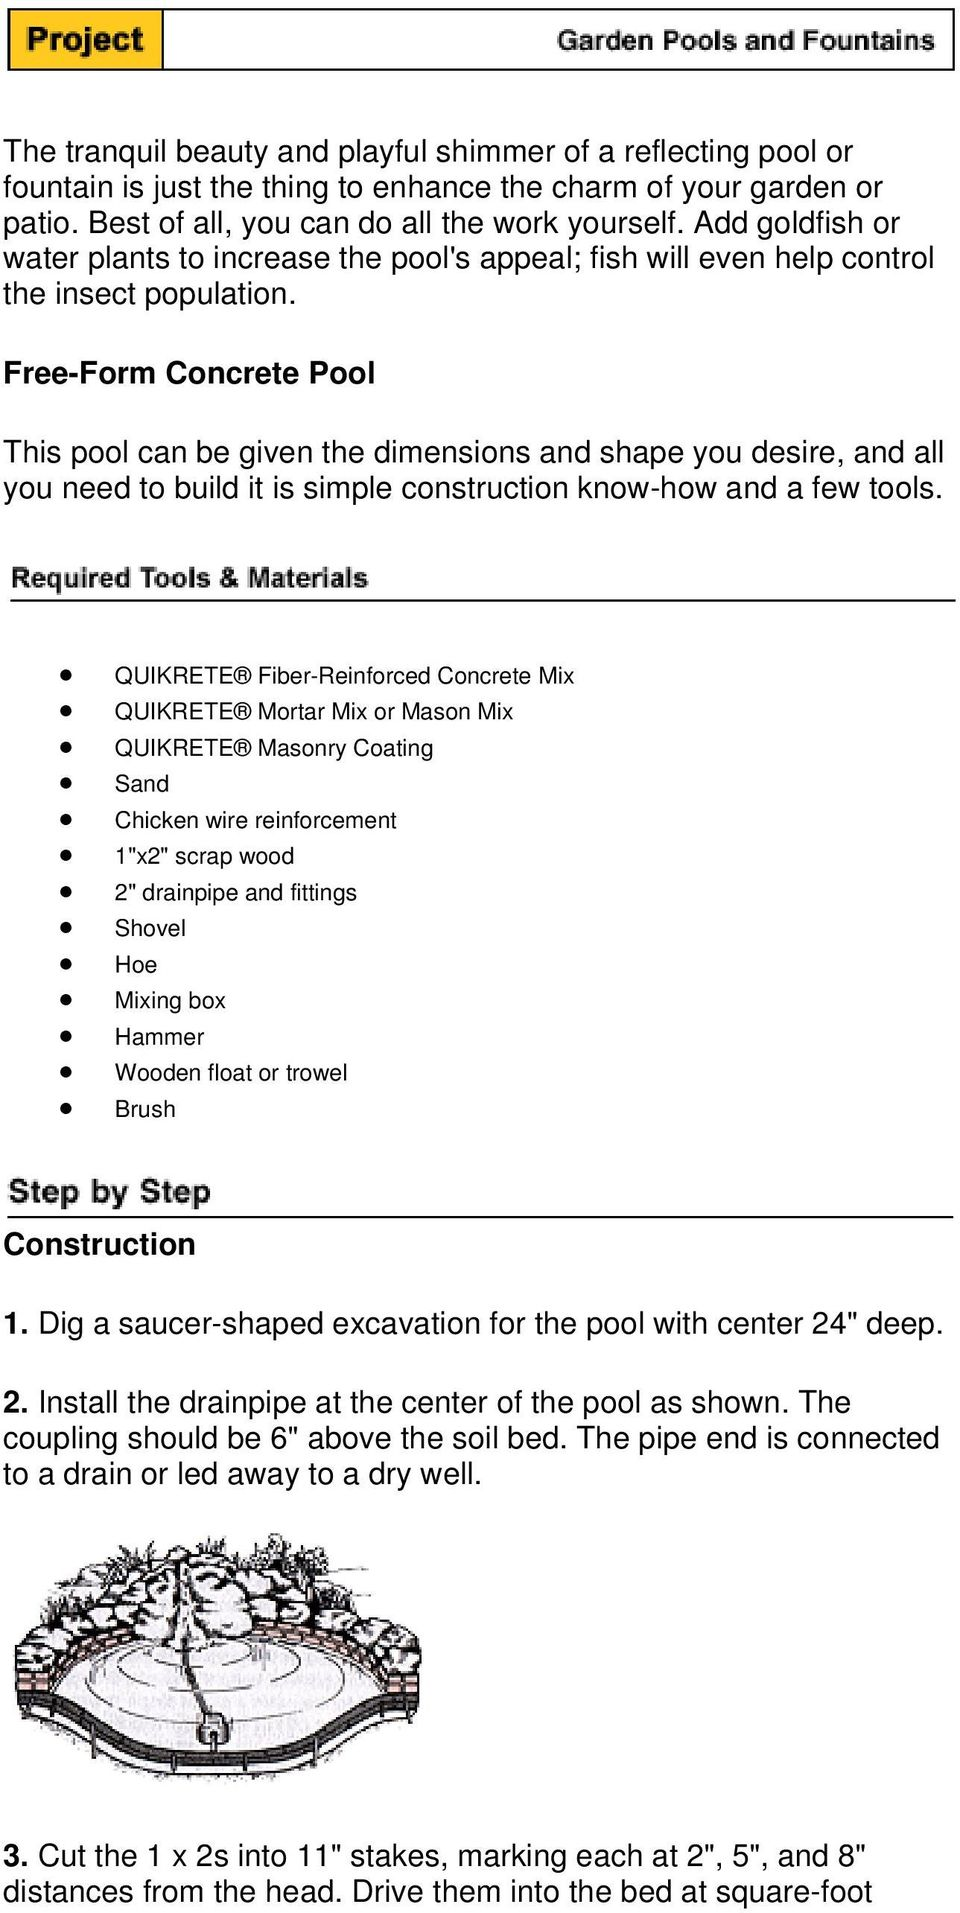 Free-Form Concrete Pool This pool can be given the dimensions and shape you desire, and all you need to build it is simple construction know-how and a few tools.